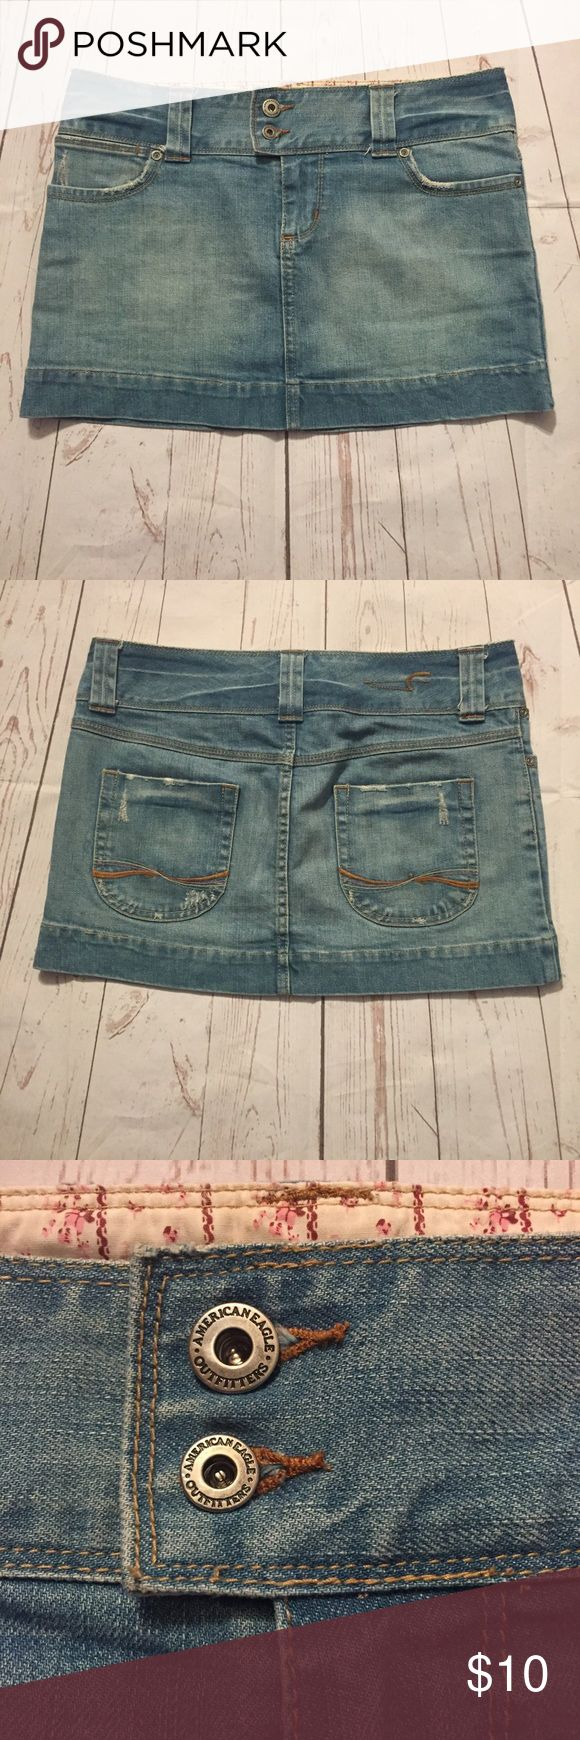 American Eagle mini Jean distressed skirt SZ 2 American Eagle Outfitters light wash distressed jean mini skirt SZ 2 waist: 16 length: 12 1/2 Preowned small stain in front see last picture American Eagle Outfitters Skirts Mini